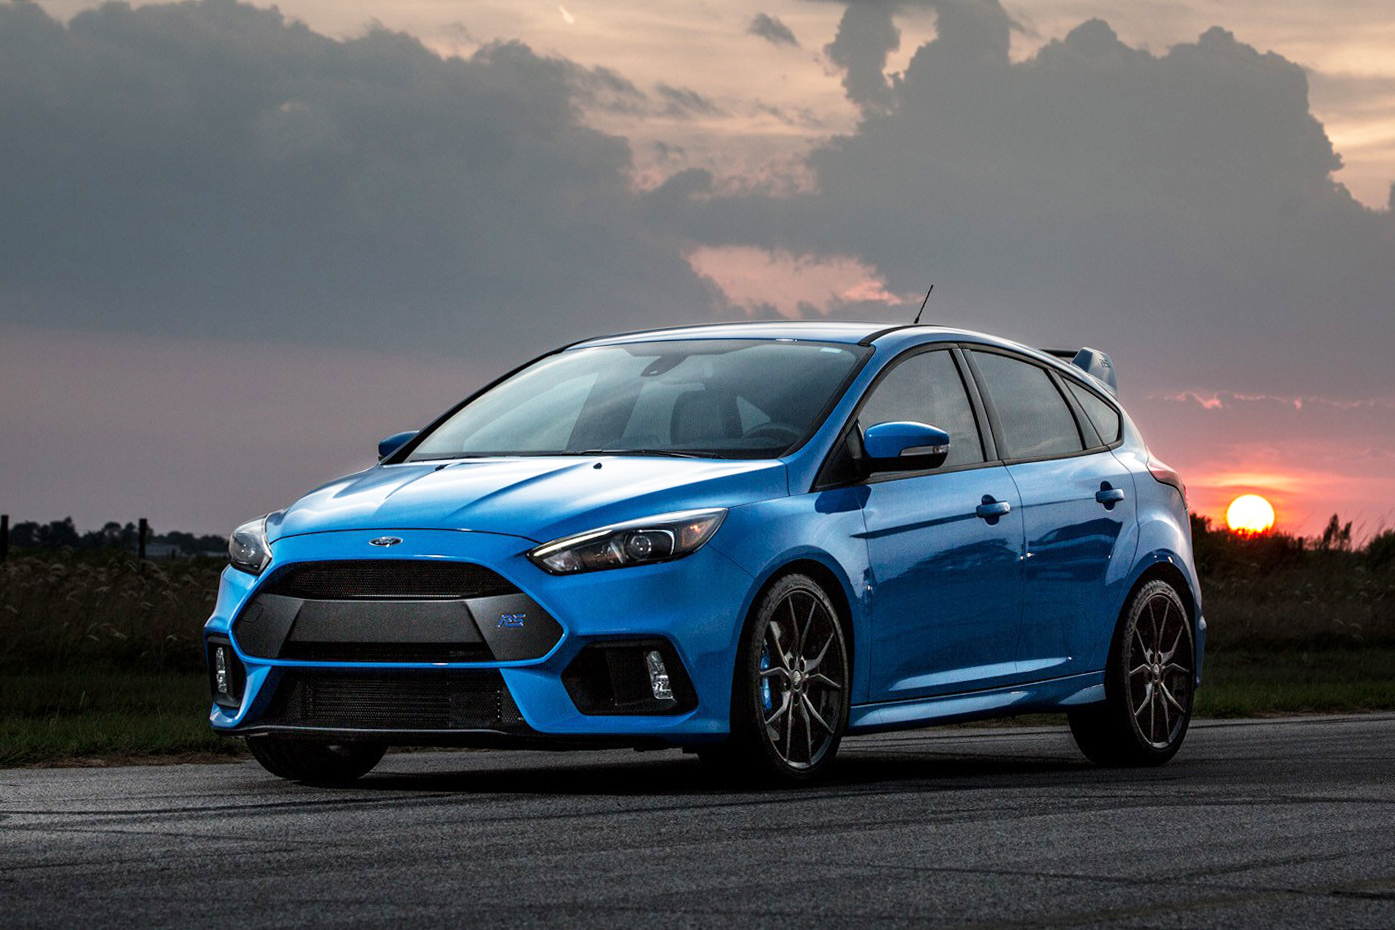 Focus Rs Hp >> Hennessey Ford Focus RS | HYPEBEAST